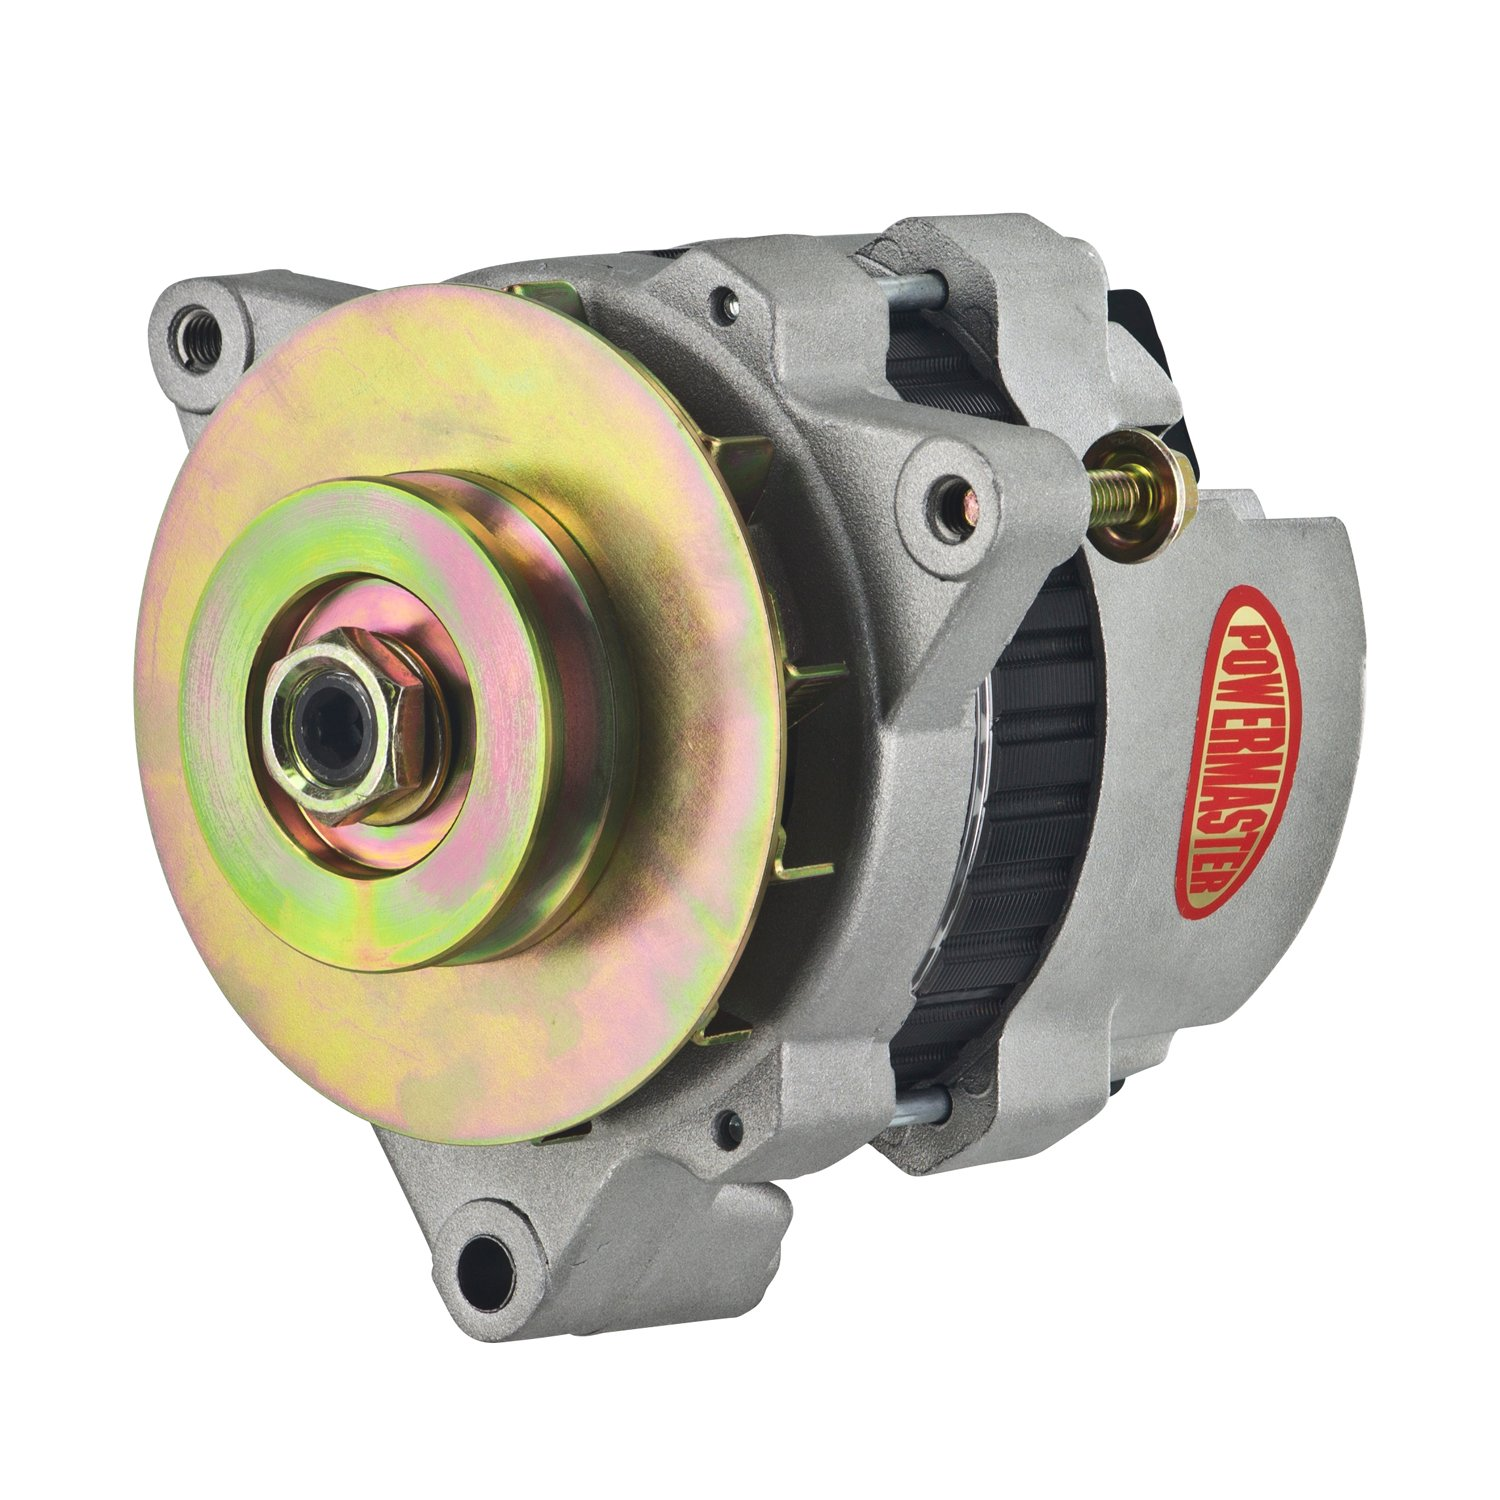 Powermaster 7472 - Powermaster GM CS121 Style 5x5 Compact Race Alternators